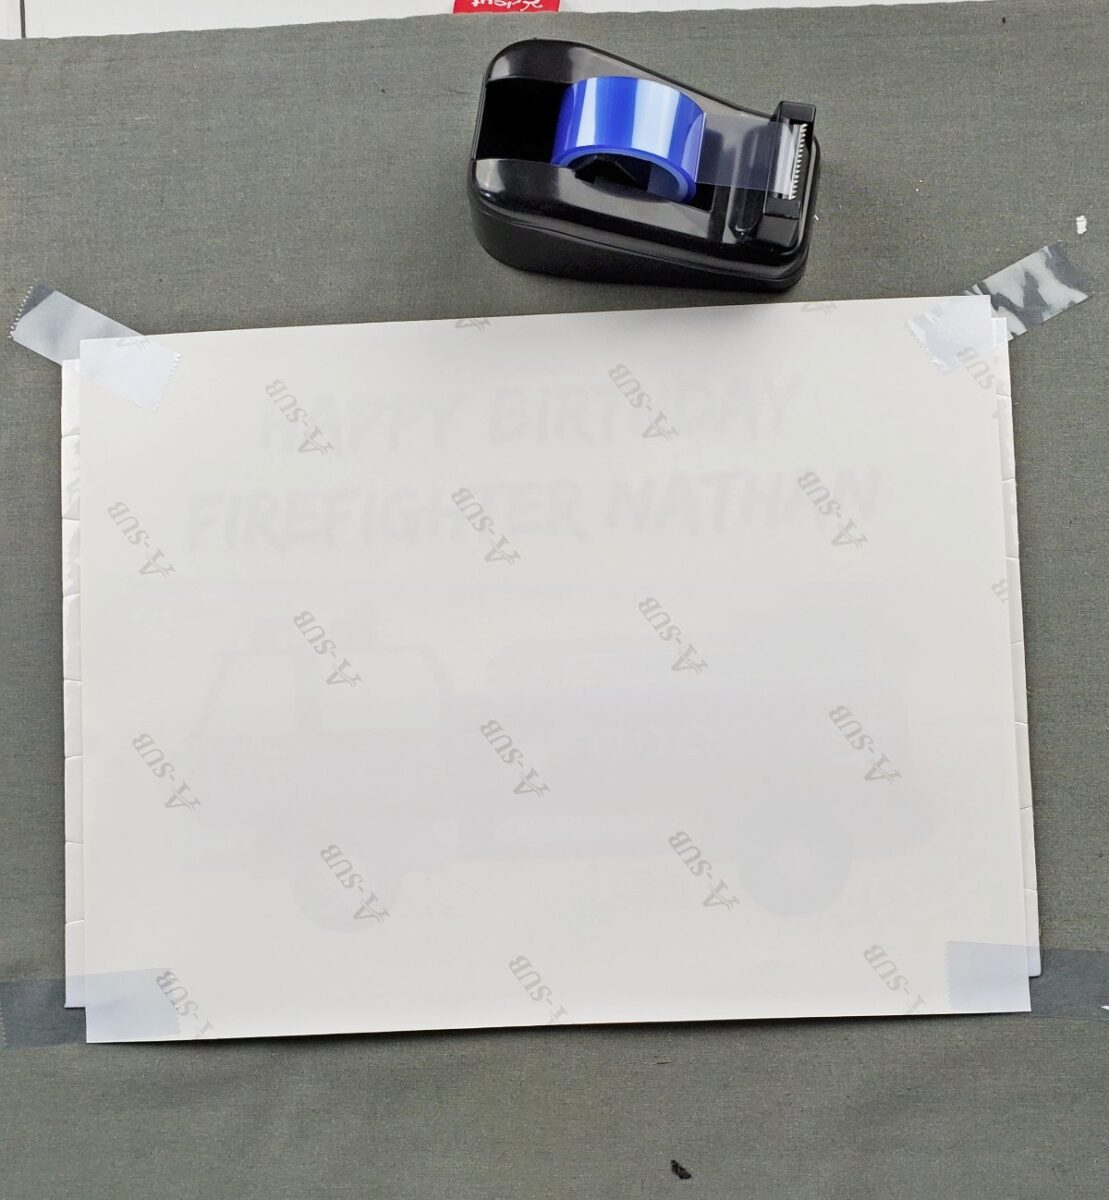 taping sublimation photo to puzzle